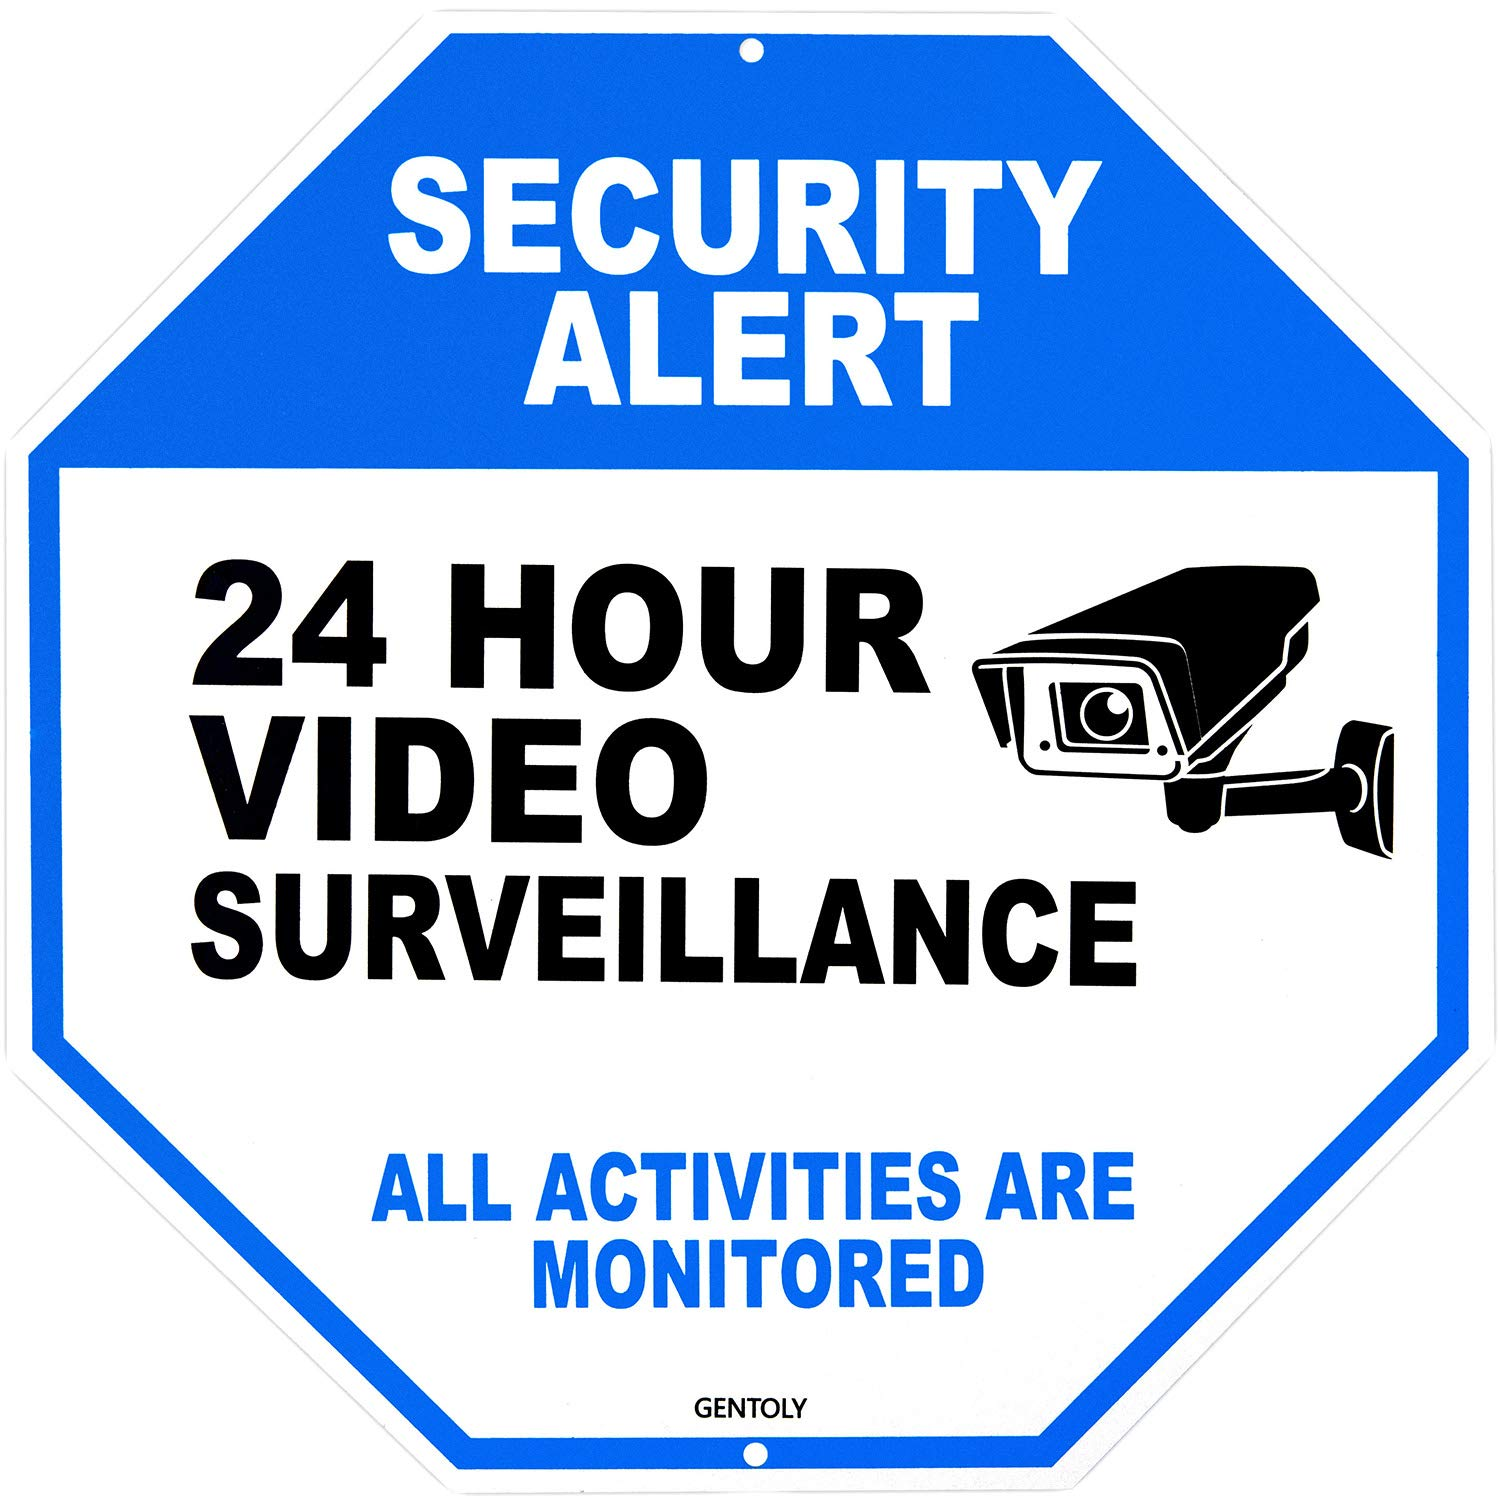 """Video Surveillance Sign - Home Security Sign - Security Camera Sign - All Activities are Monitored - Rust Free 12"""" x 12"""" Aluminum Sign, by Gentoly"""